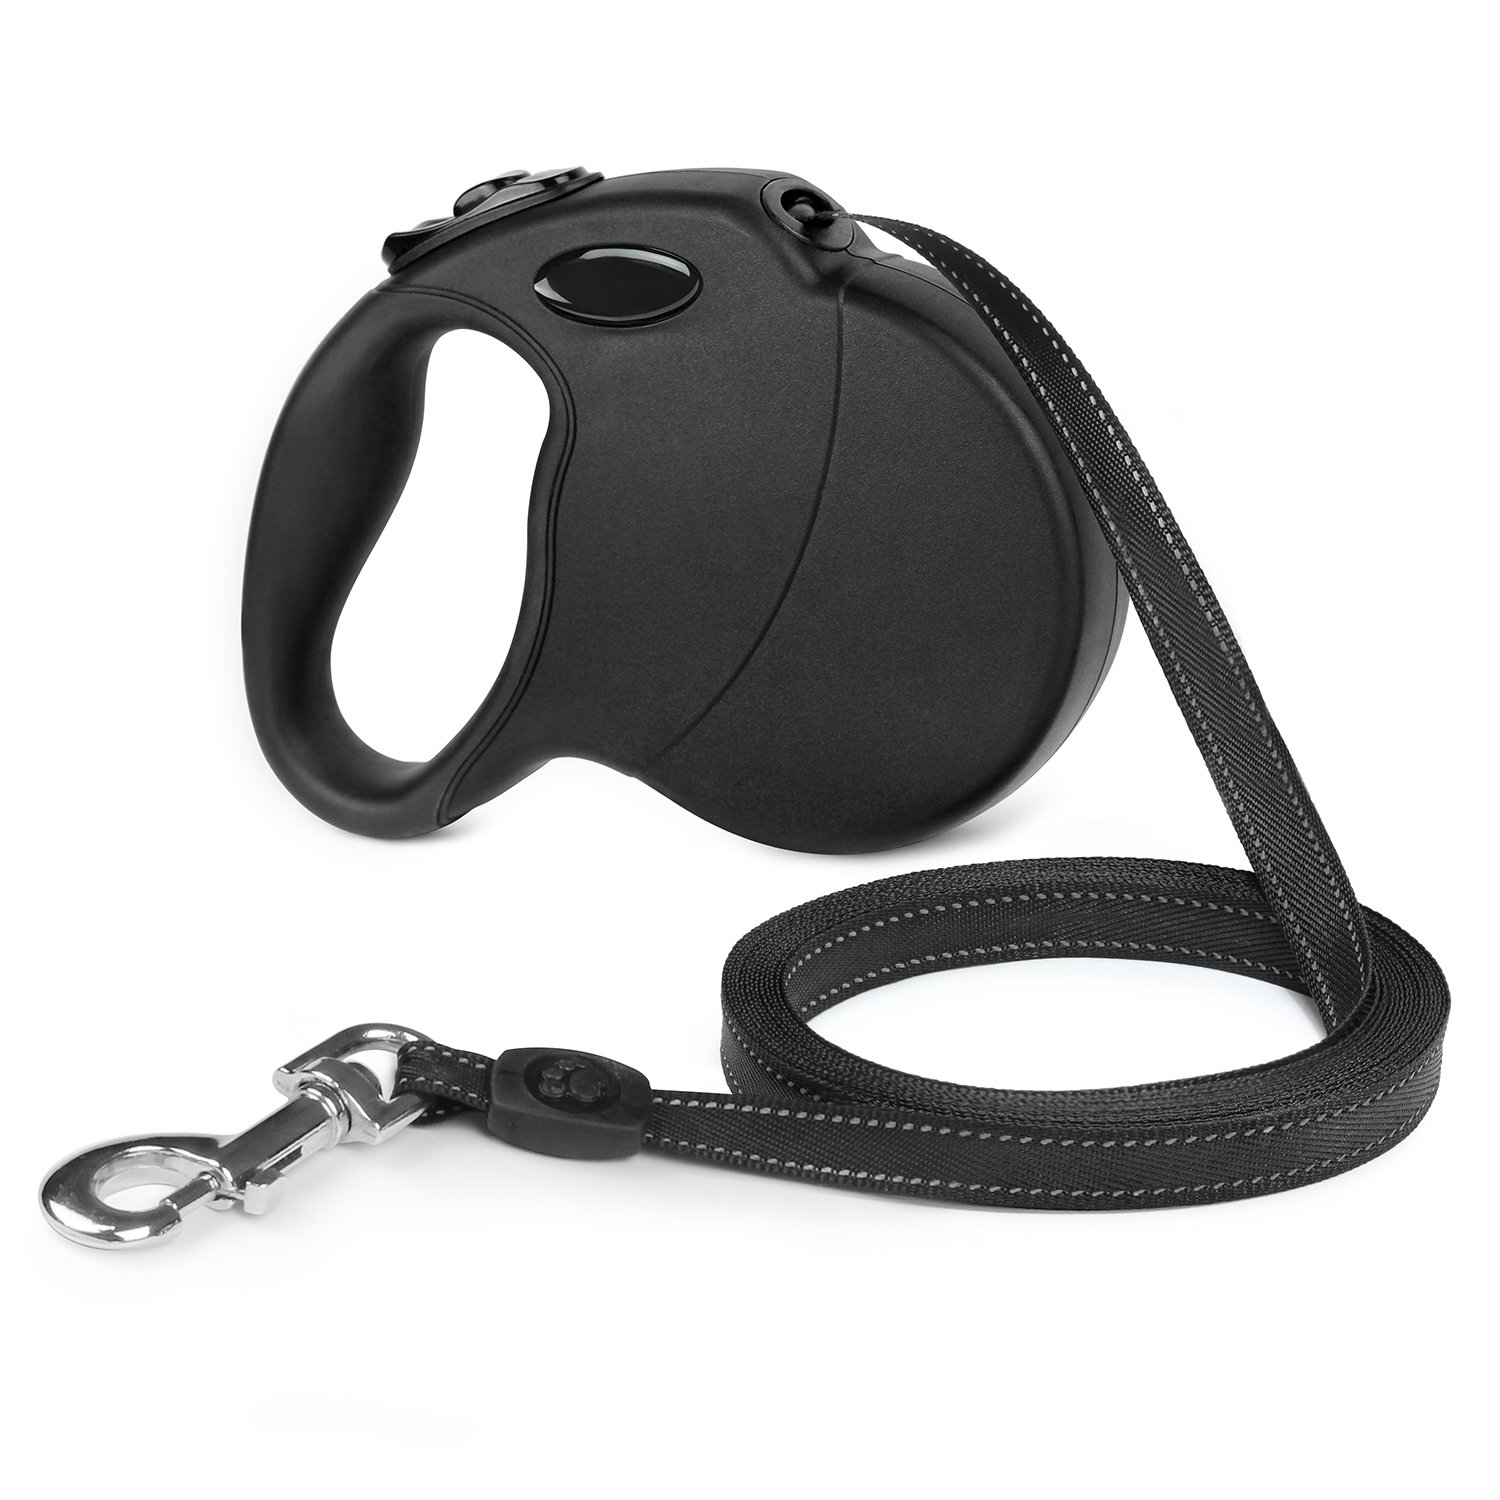 Pro Retractable Dog Leash, 16ft Dog Walking Leash for Large Medium Small Dogs up to 110 lbs, Tangle Free, Soft Hand Grip, Reflective Ribbon Cord, One Button Brake & Lock - Black